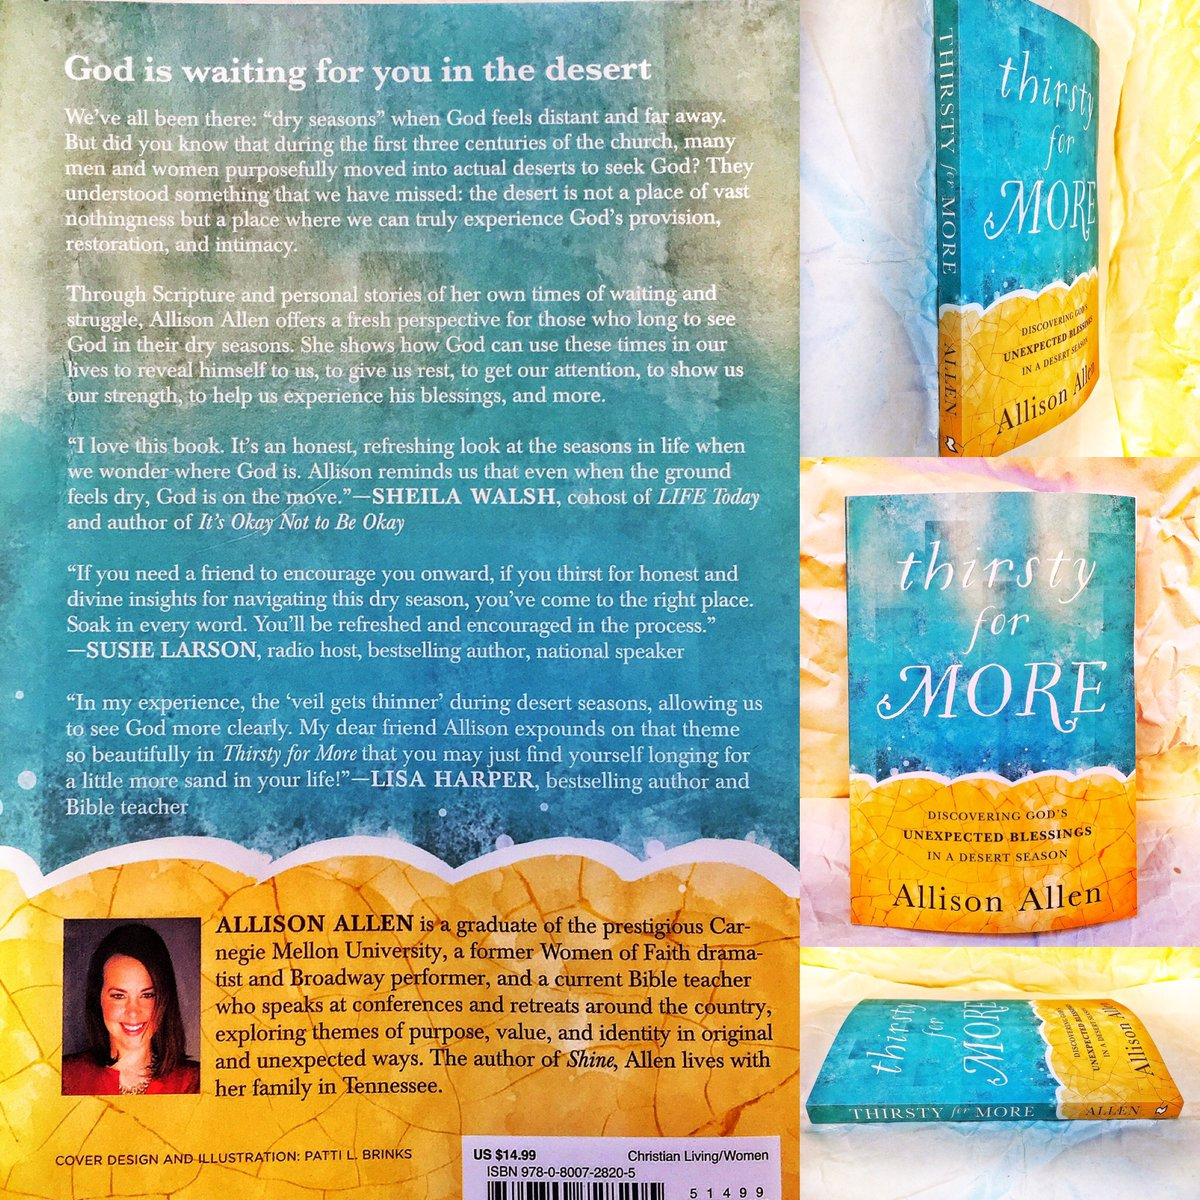 Look what I found on @eBay!  via @eBay #book #ThirstyForMore #readers #bookclubs #bookstore #bookstagram #booklovers #BookShelf #amazonbook #faith #God #prayers #christian #stayhome #homeschool #guide #howto #paperback #nonfiction #ChristianLiving #women